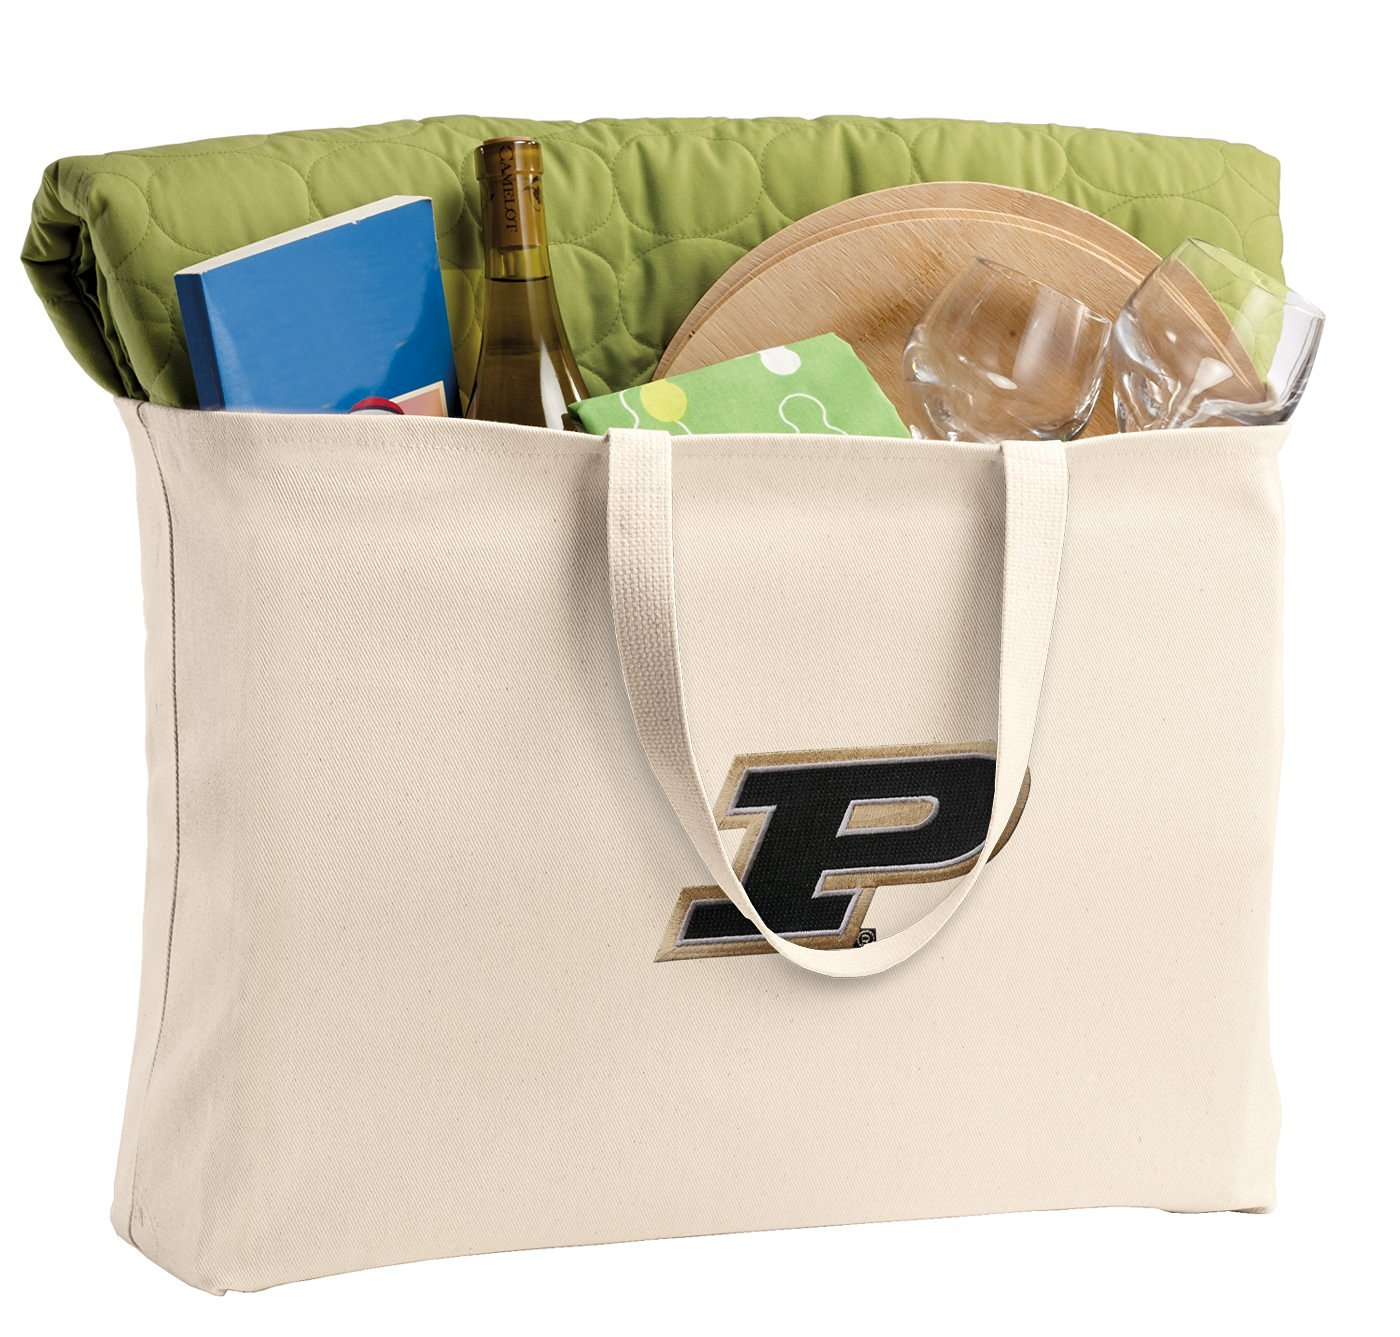 JUMBO Purdue University Tote Bag or Large Canvas Purdue Shopping Bag